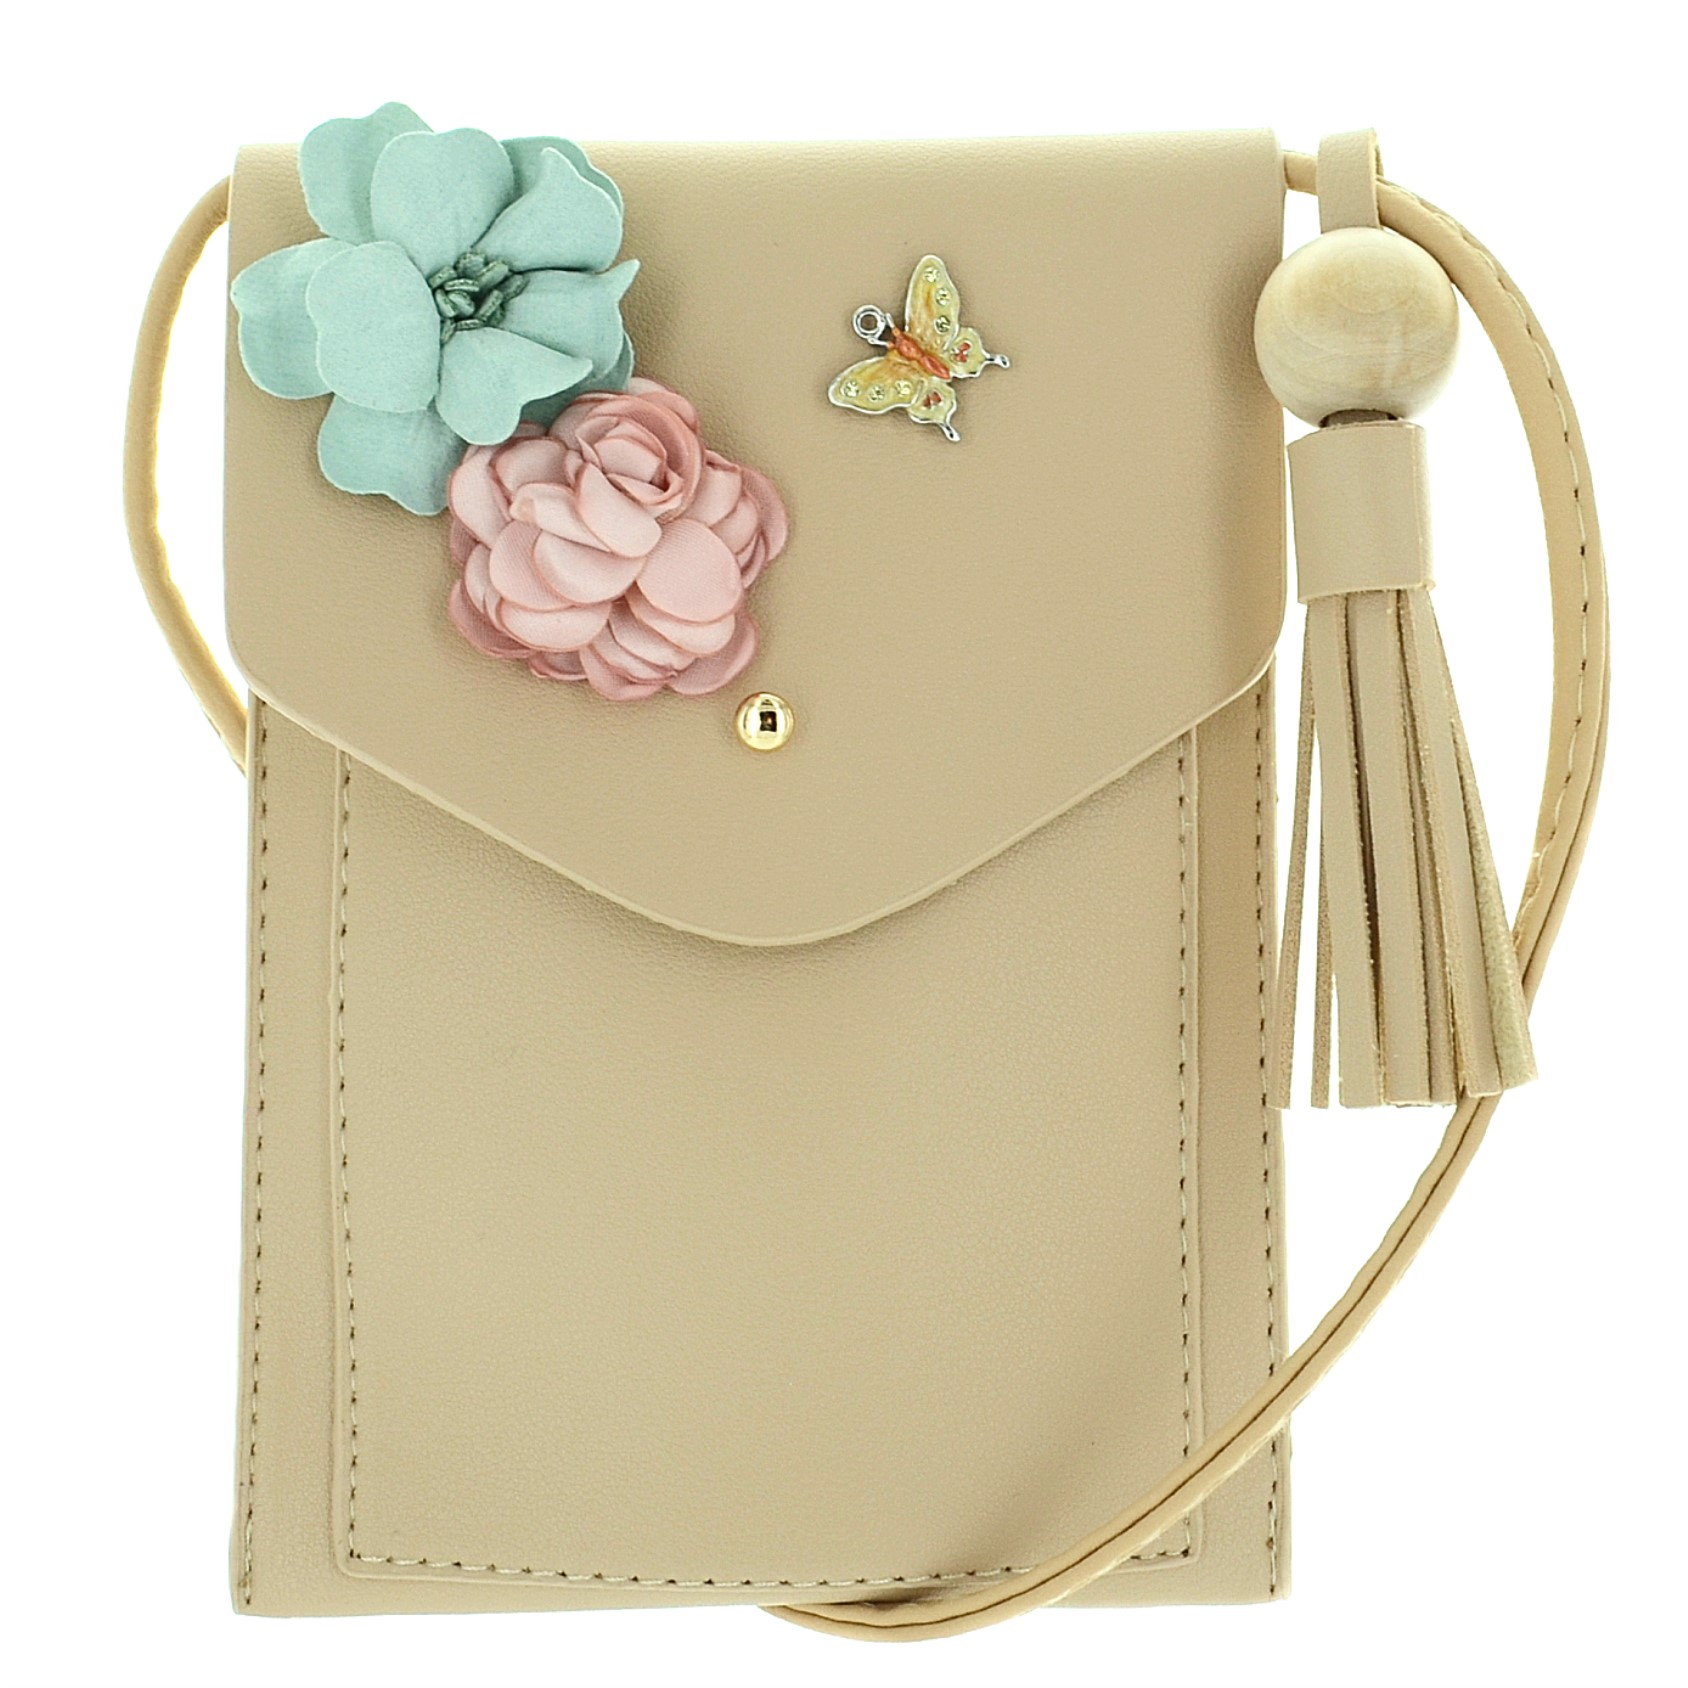 Floral Applique Faux Leather Crossbody Mini Bag | 322407-210 | ESwanNY